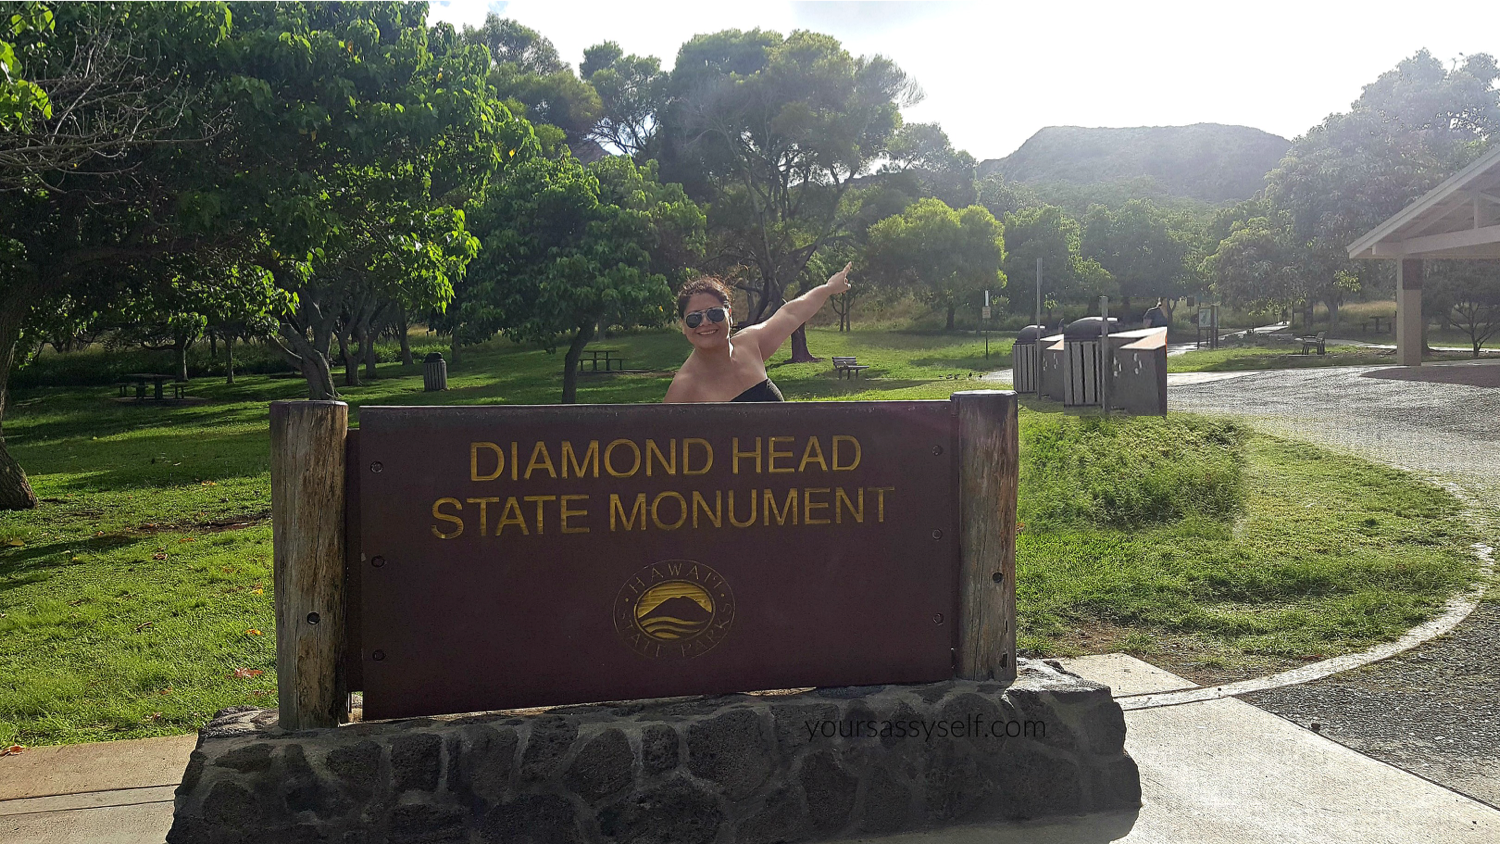 Entrance to Diamond Head - yoursassyself.com